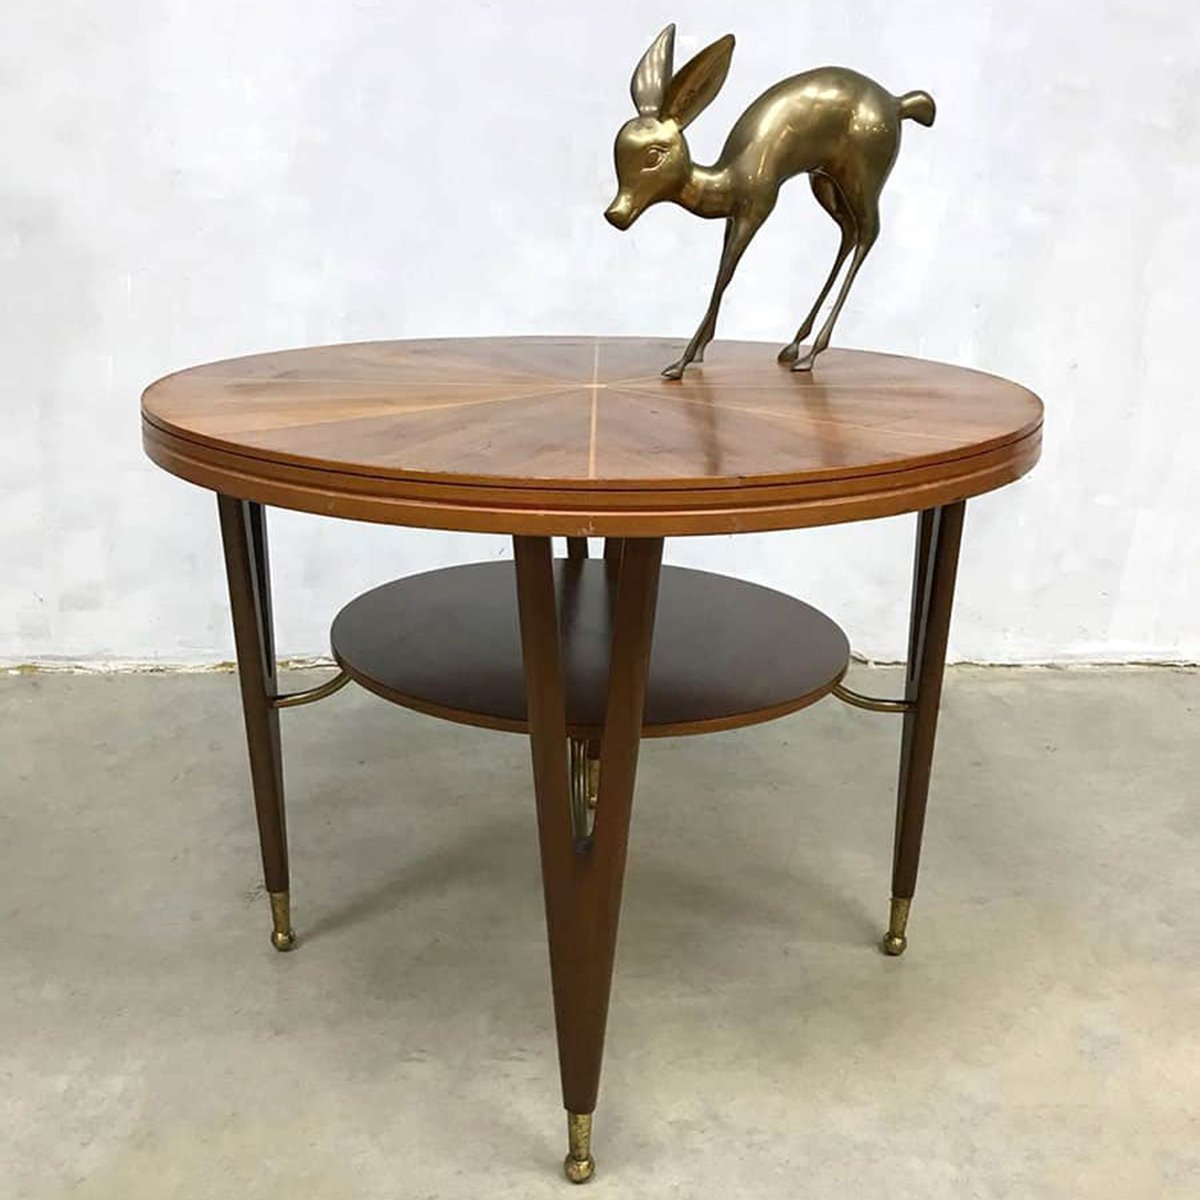 Midcentury Modern Coffee Table By Jese Mobel 82291